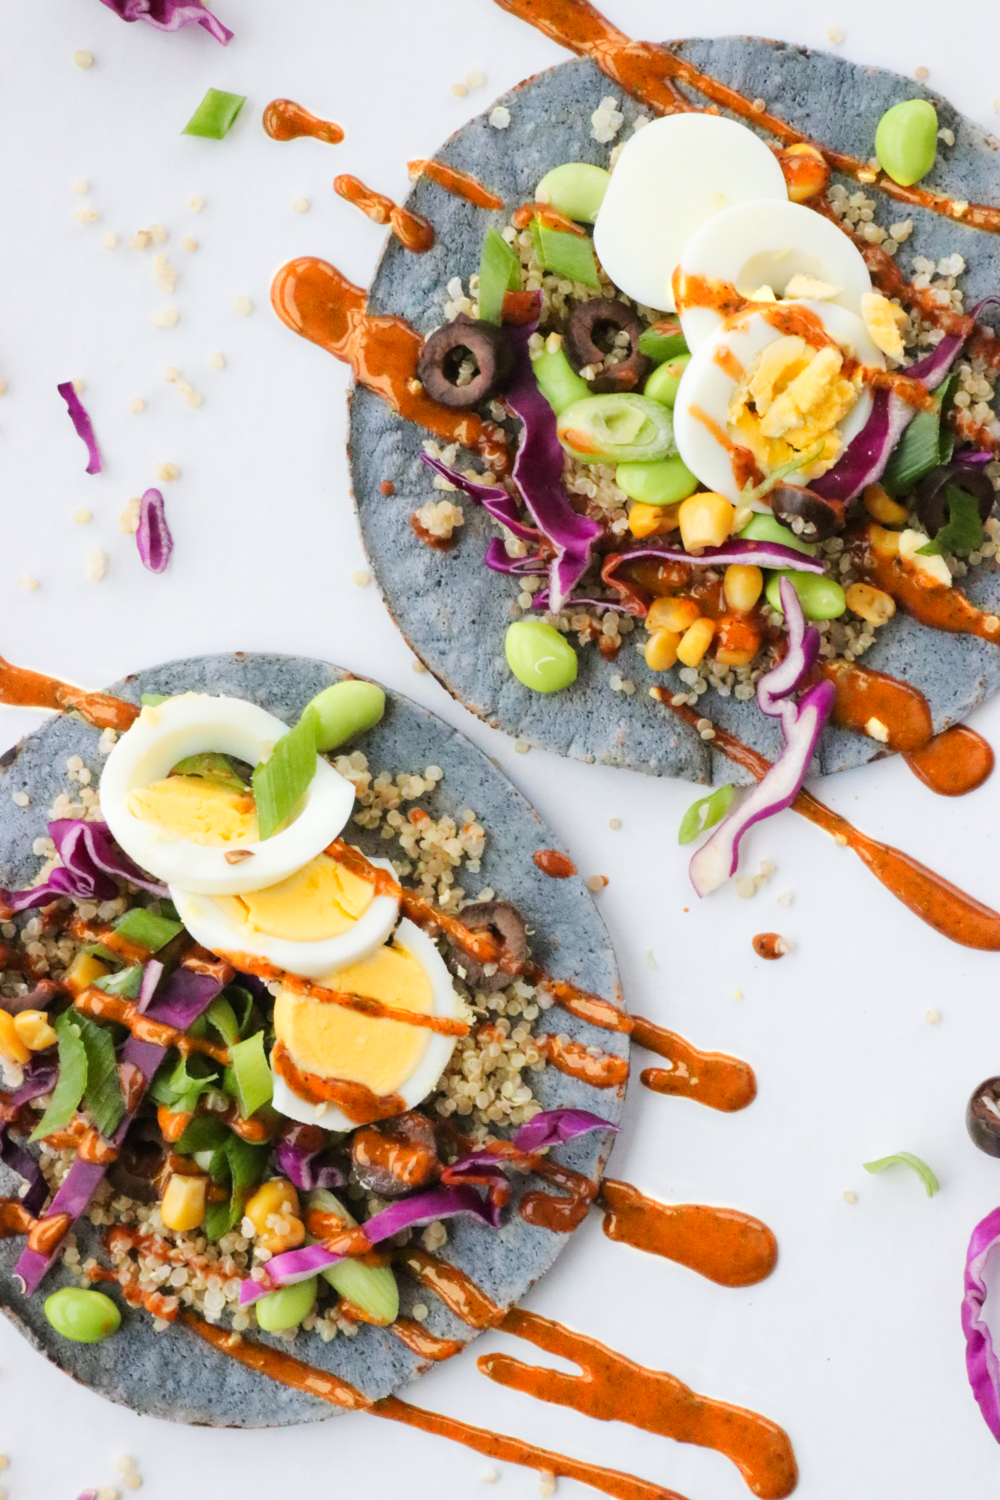 Not Your Usual Taco Tuesday: Quinoa Veggie Blue Corn Tortilla Tacos